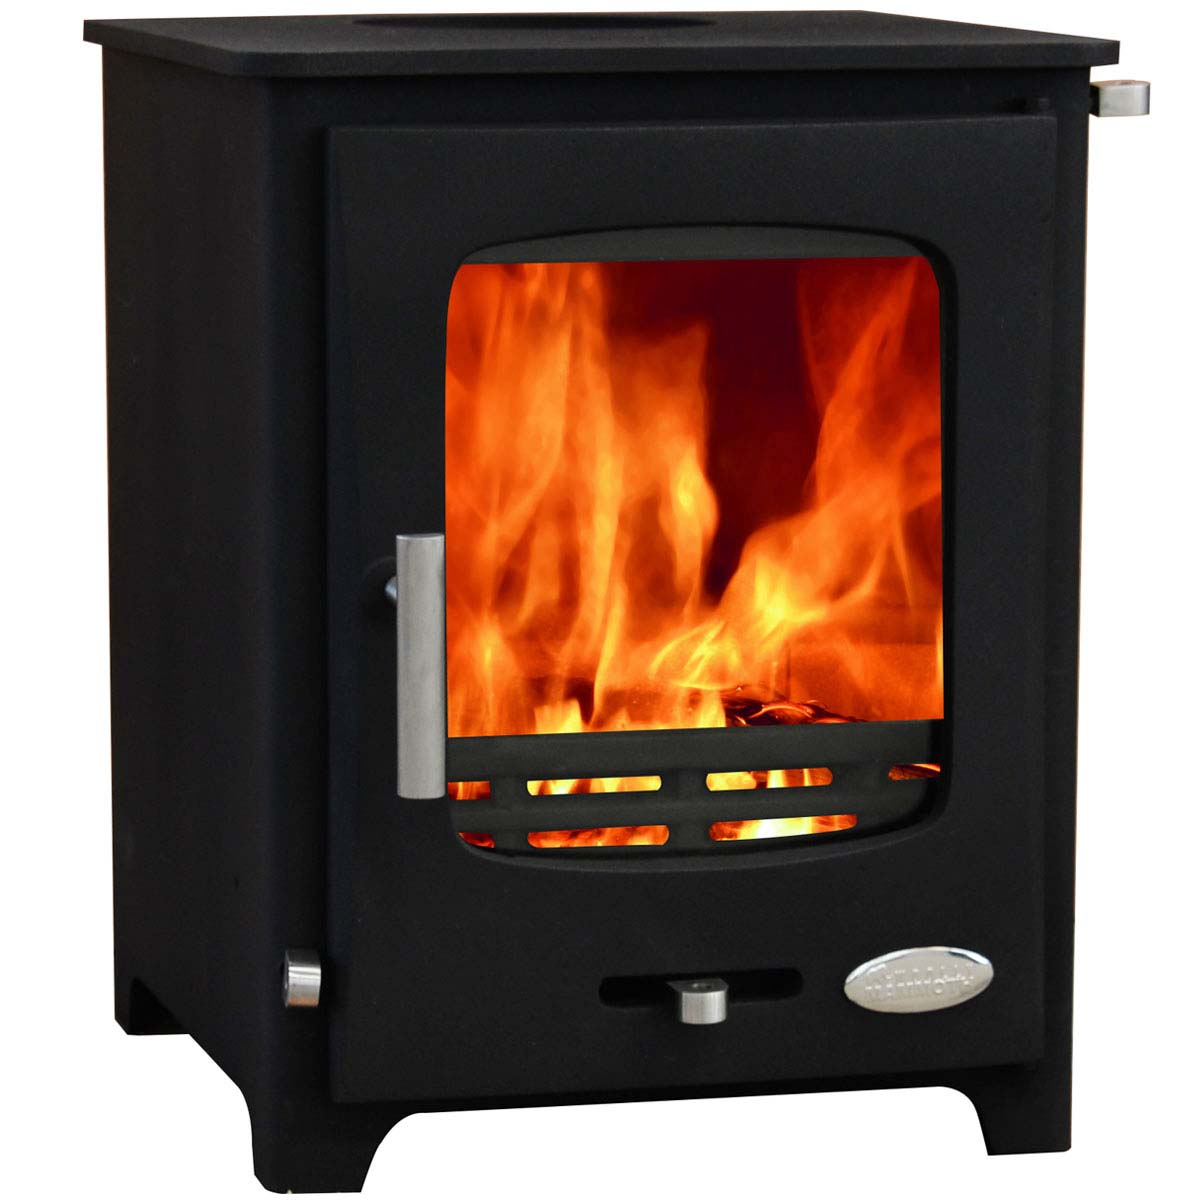 Woolly Mammoth 5 multi-fuel 4.9kw stove